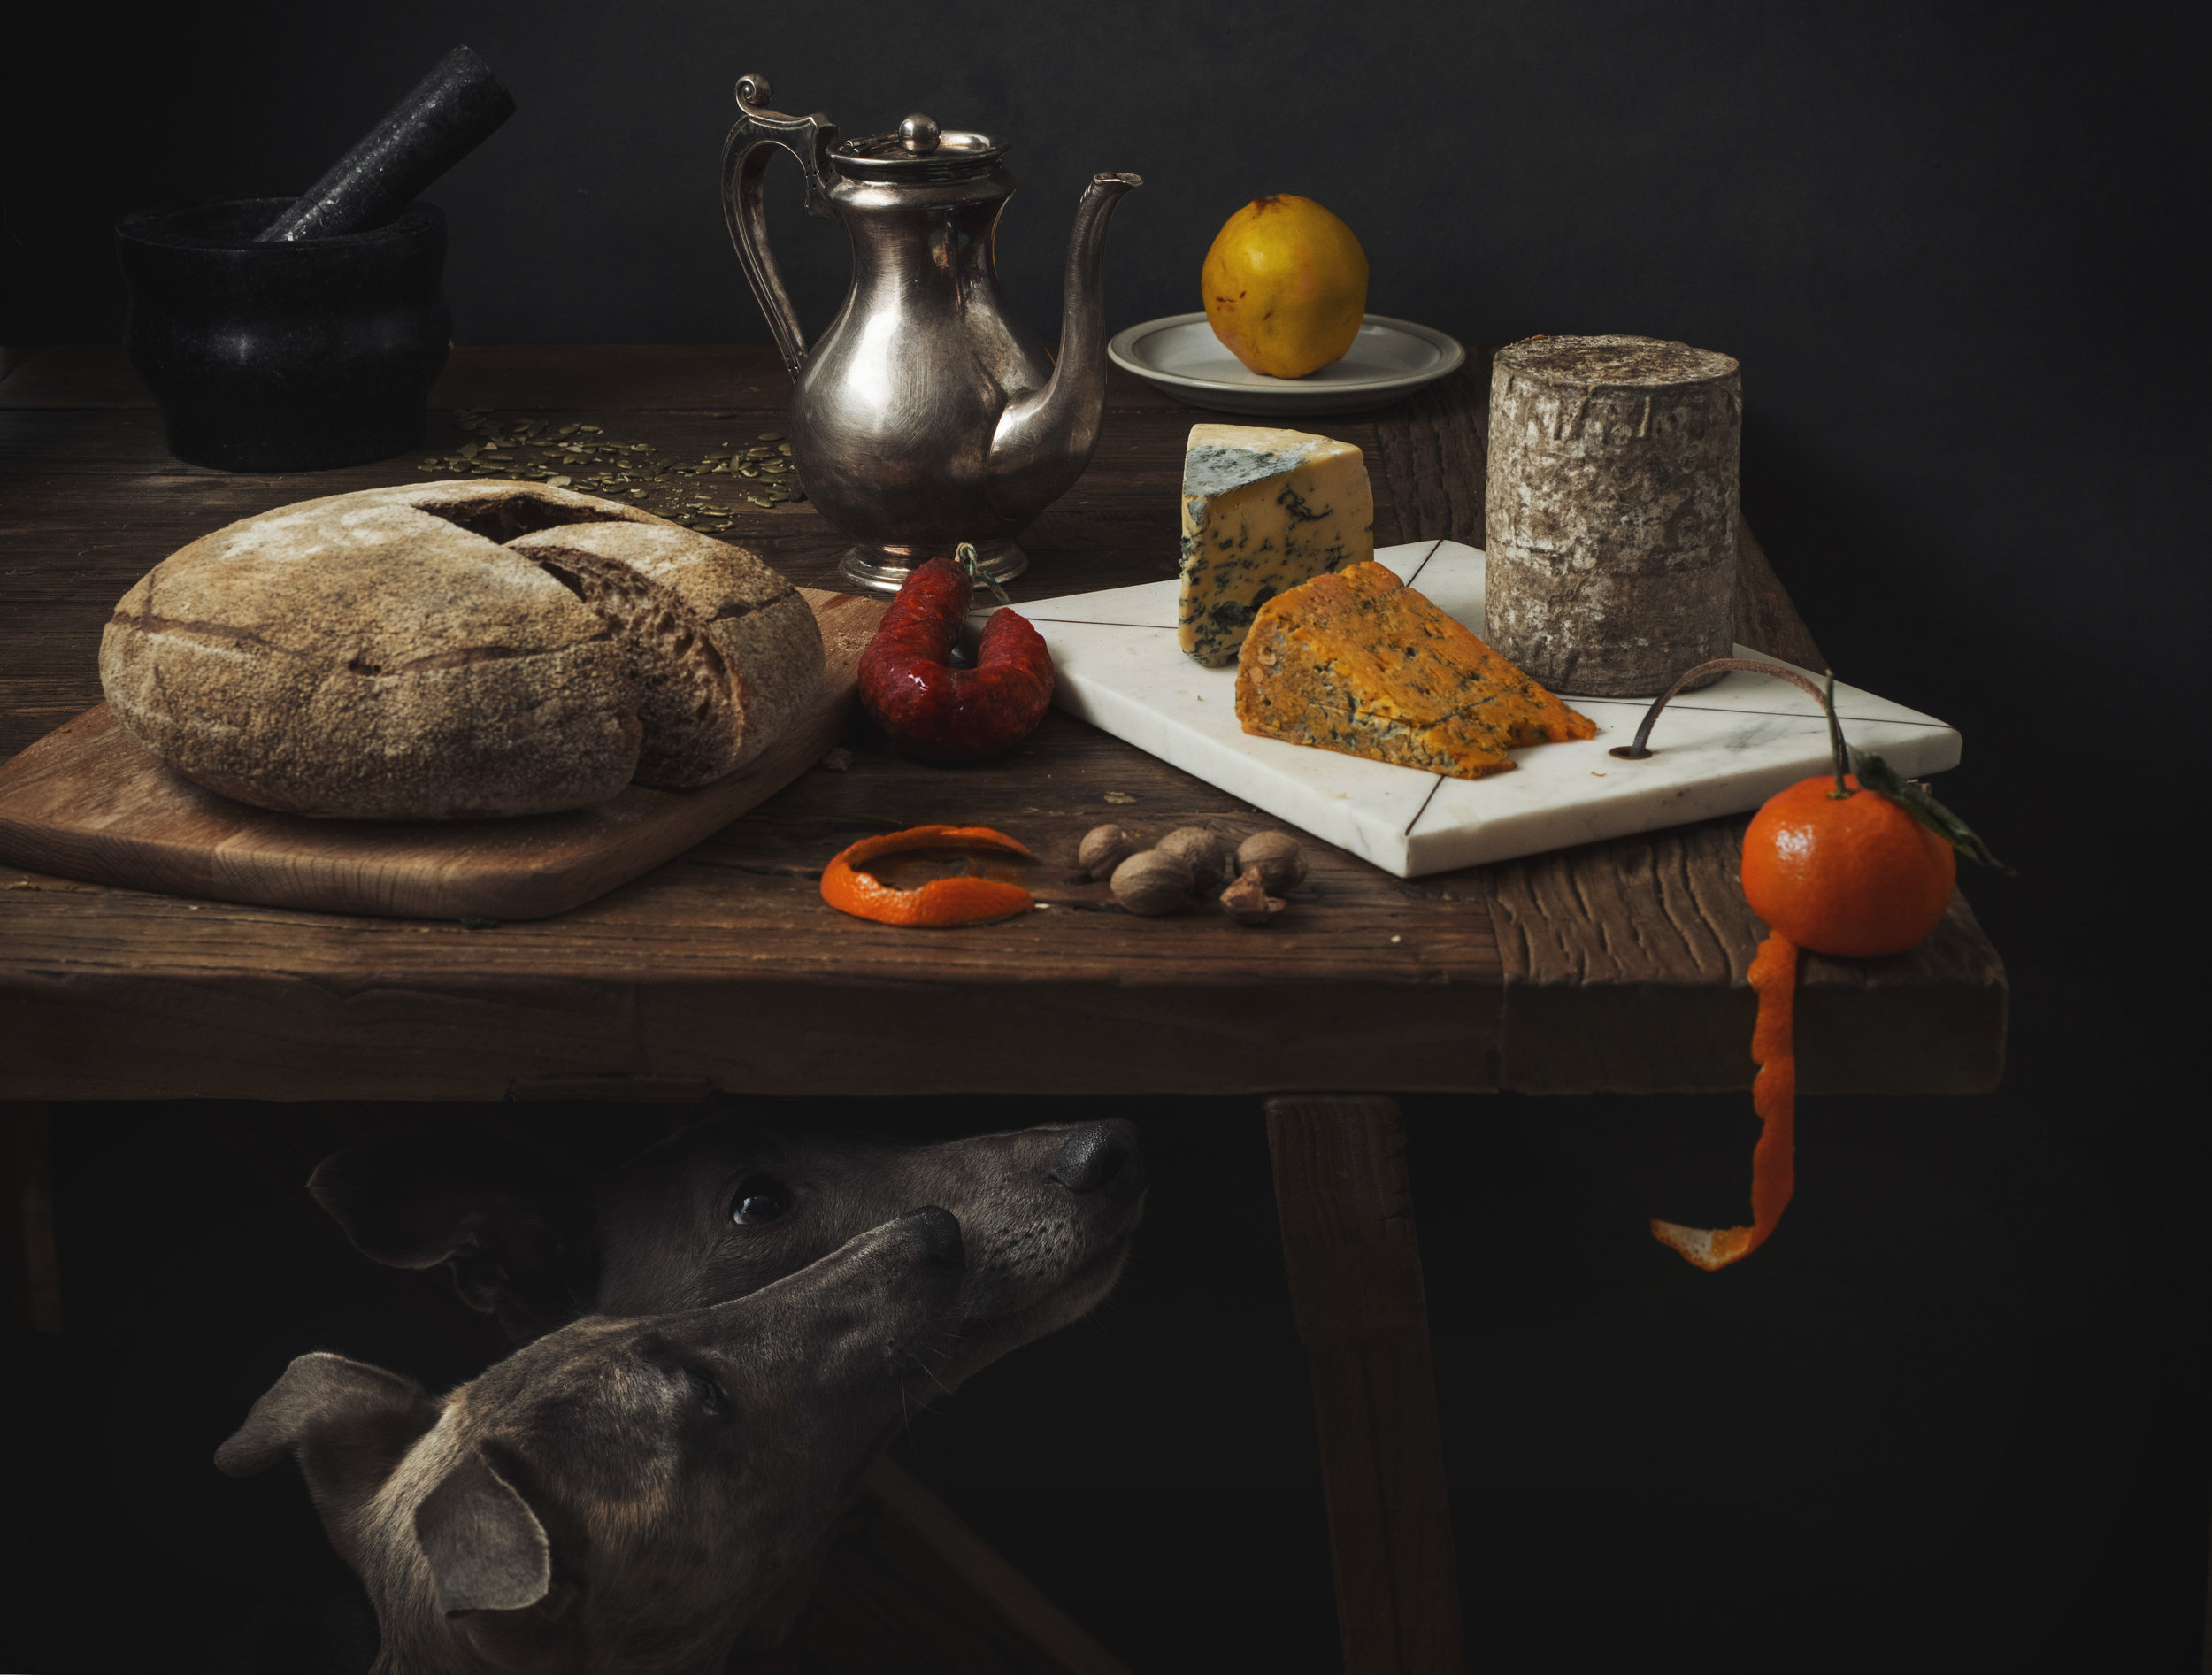 A table of cheese, bread and meat inspired by the Dutch Masters - still life